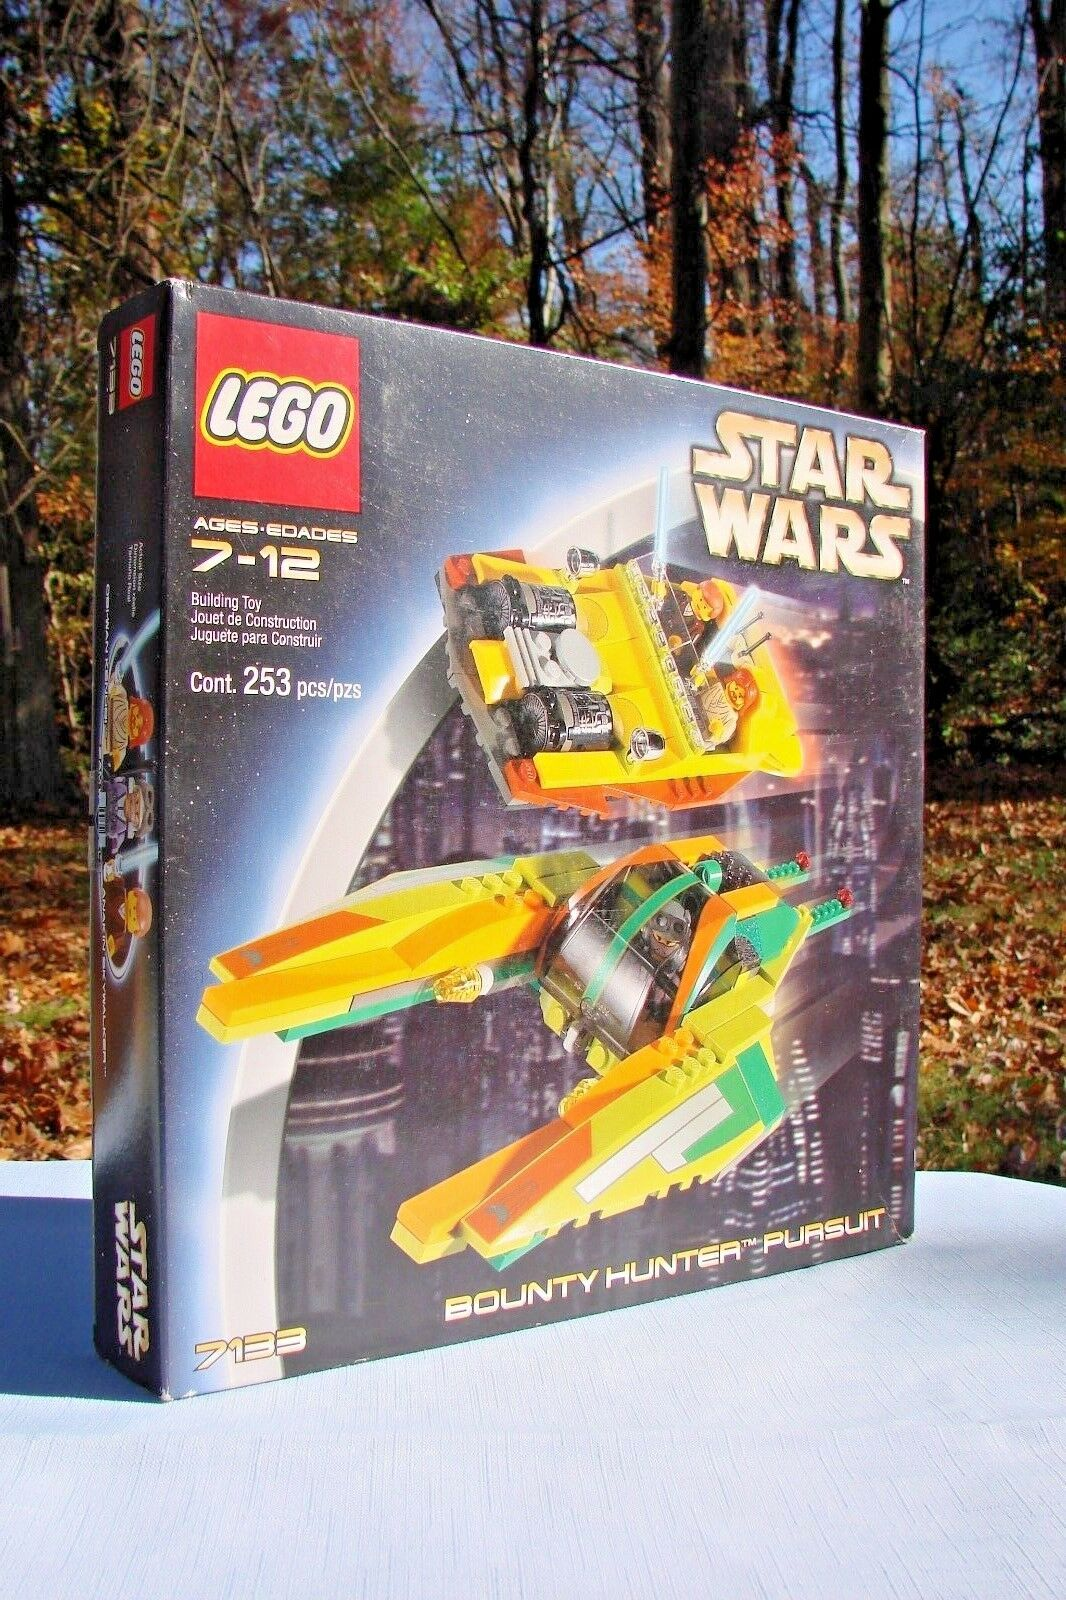 ~~~ Lego 7133 Star Wars BOUNTY HUNTER PURSUIT ~ Factory Sealed Box ~~~